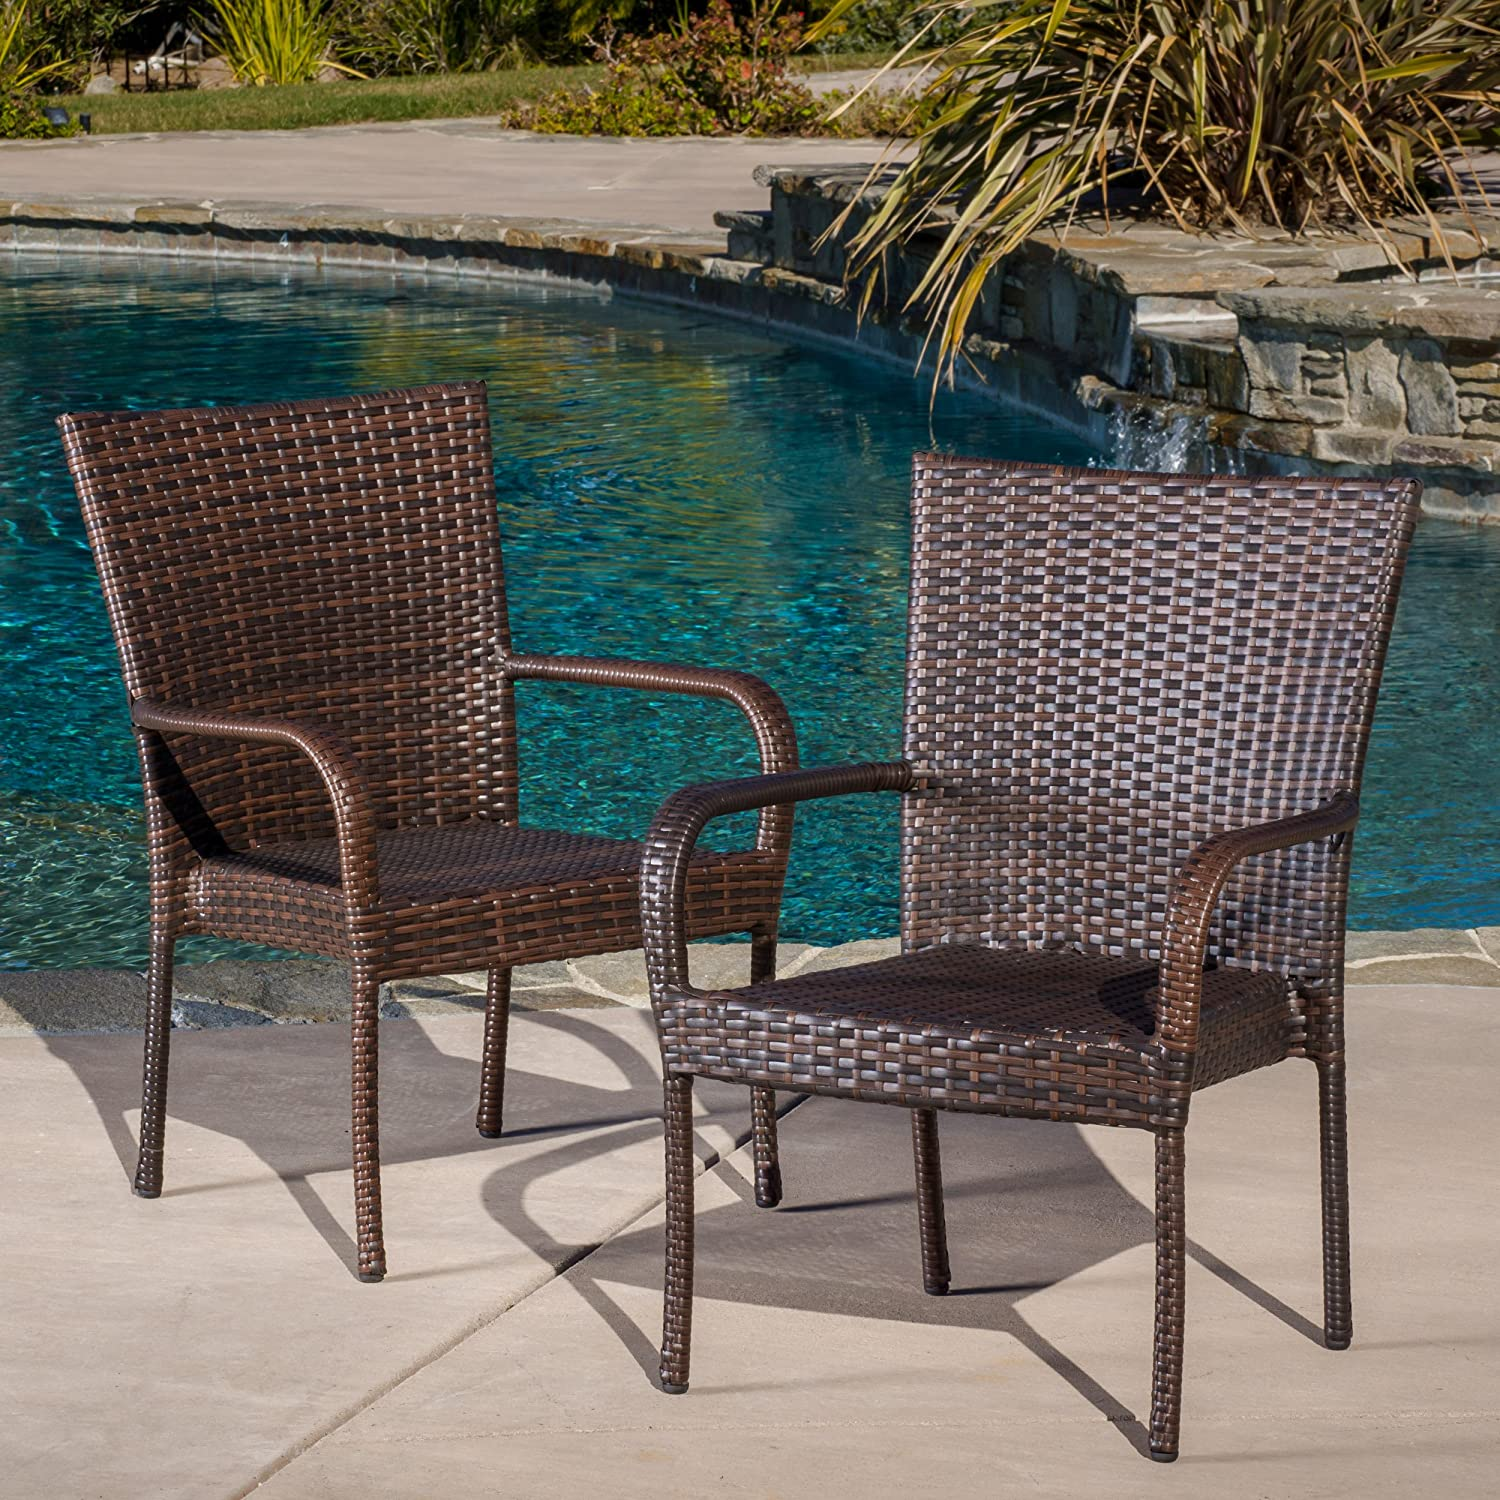 Christopher Knight Home 278771 Stackable Outdoor Contemporary Wicker Stacking Chairs Set of 2 , Multi-Brown